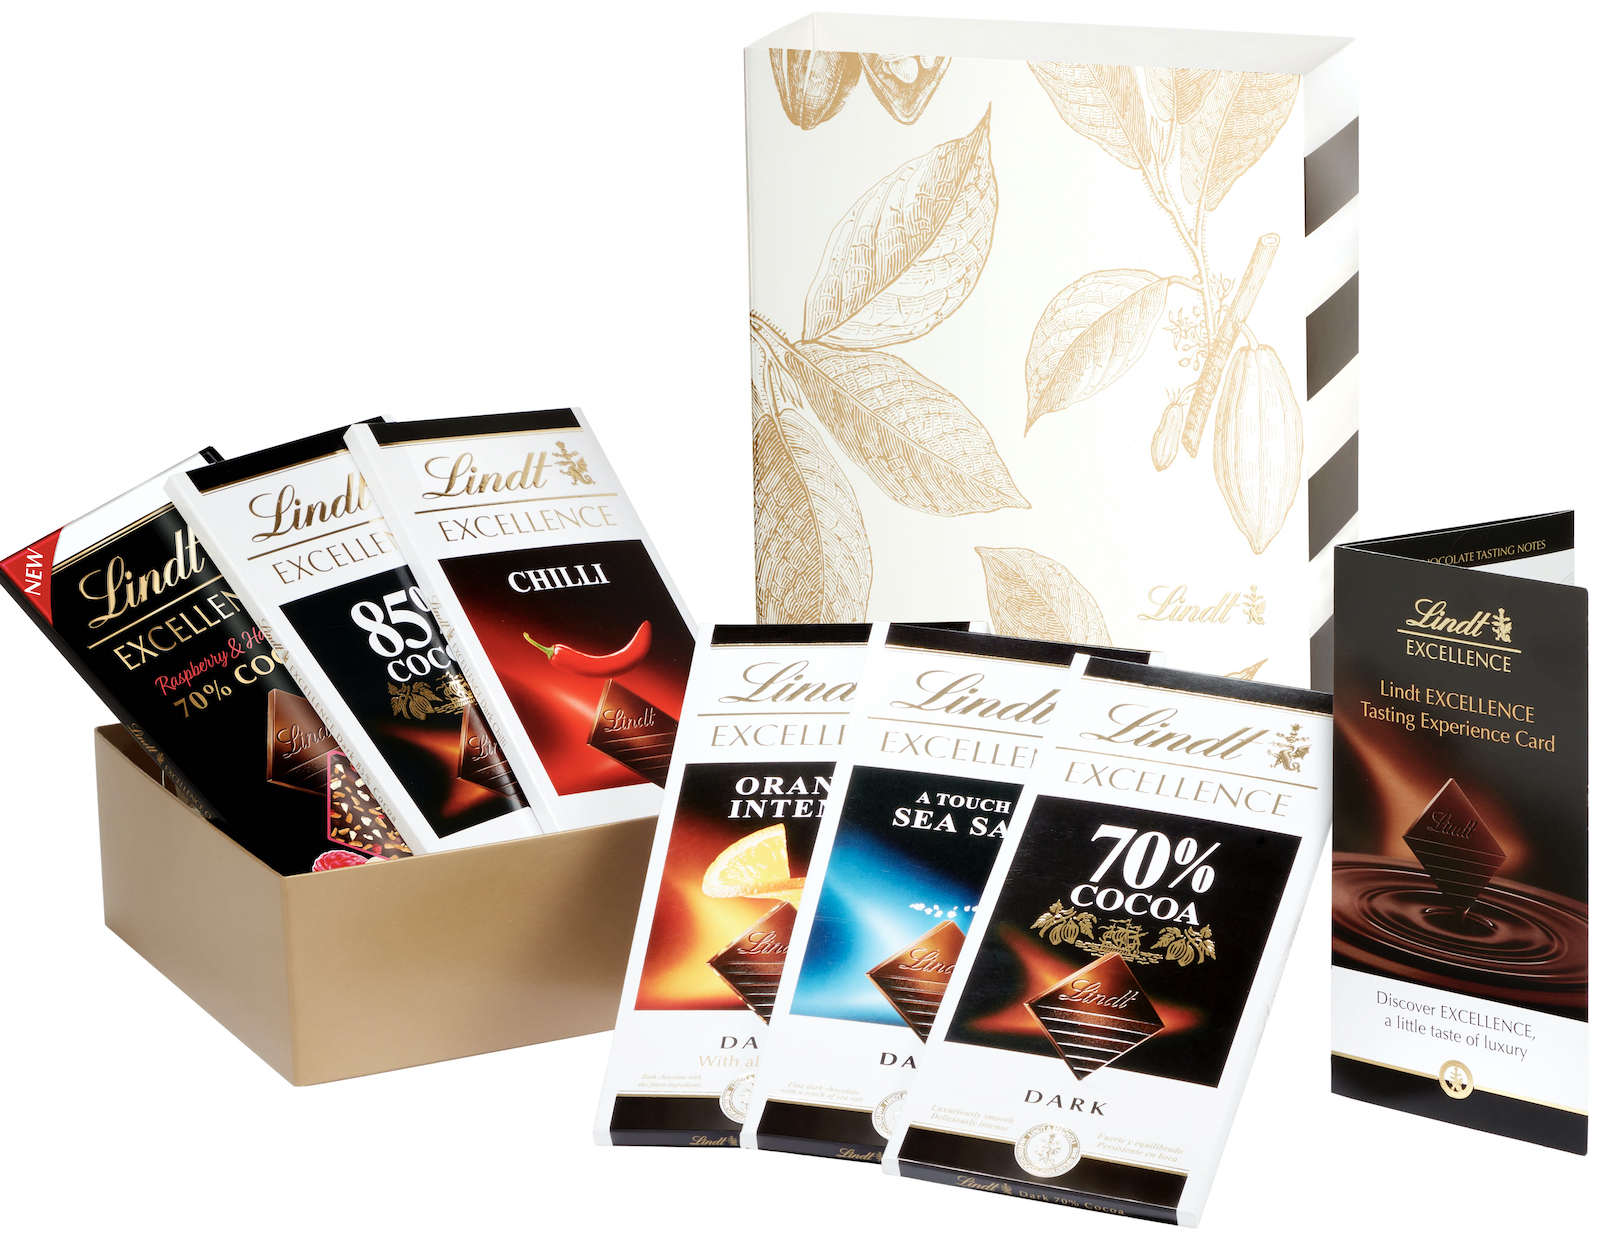 The LINDT EXCELLENCE Virtual Tasting Experience includes a chocolate box containing six bars of LINDT